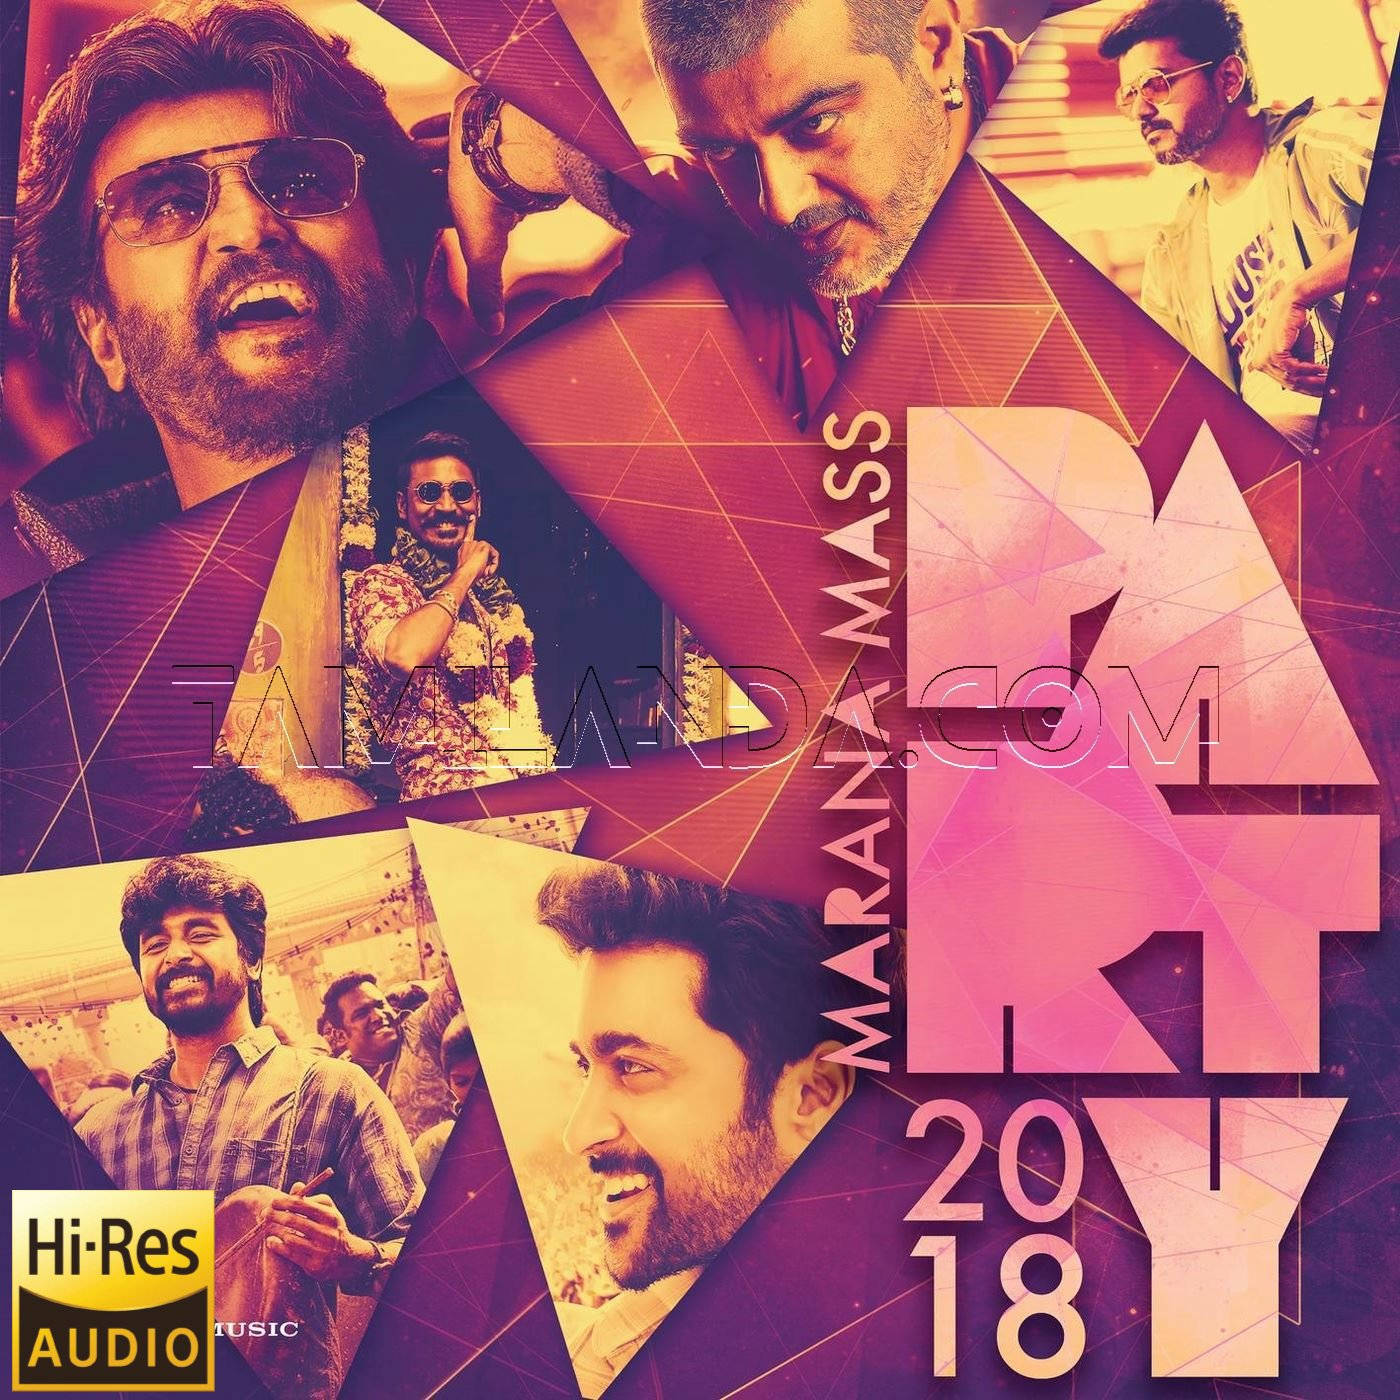 Marana Mass Party 2018 FLAC Songs (24 BIT)